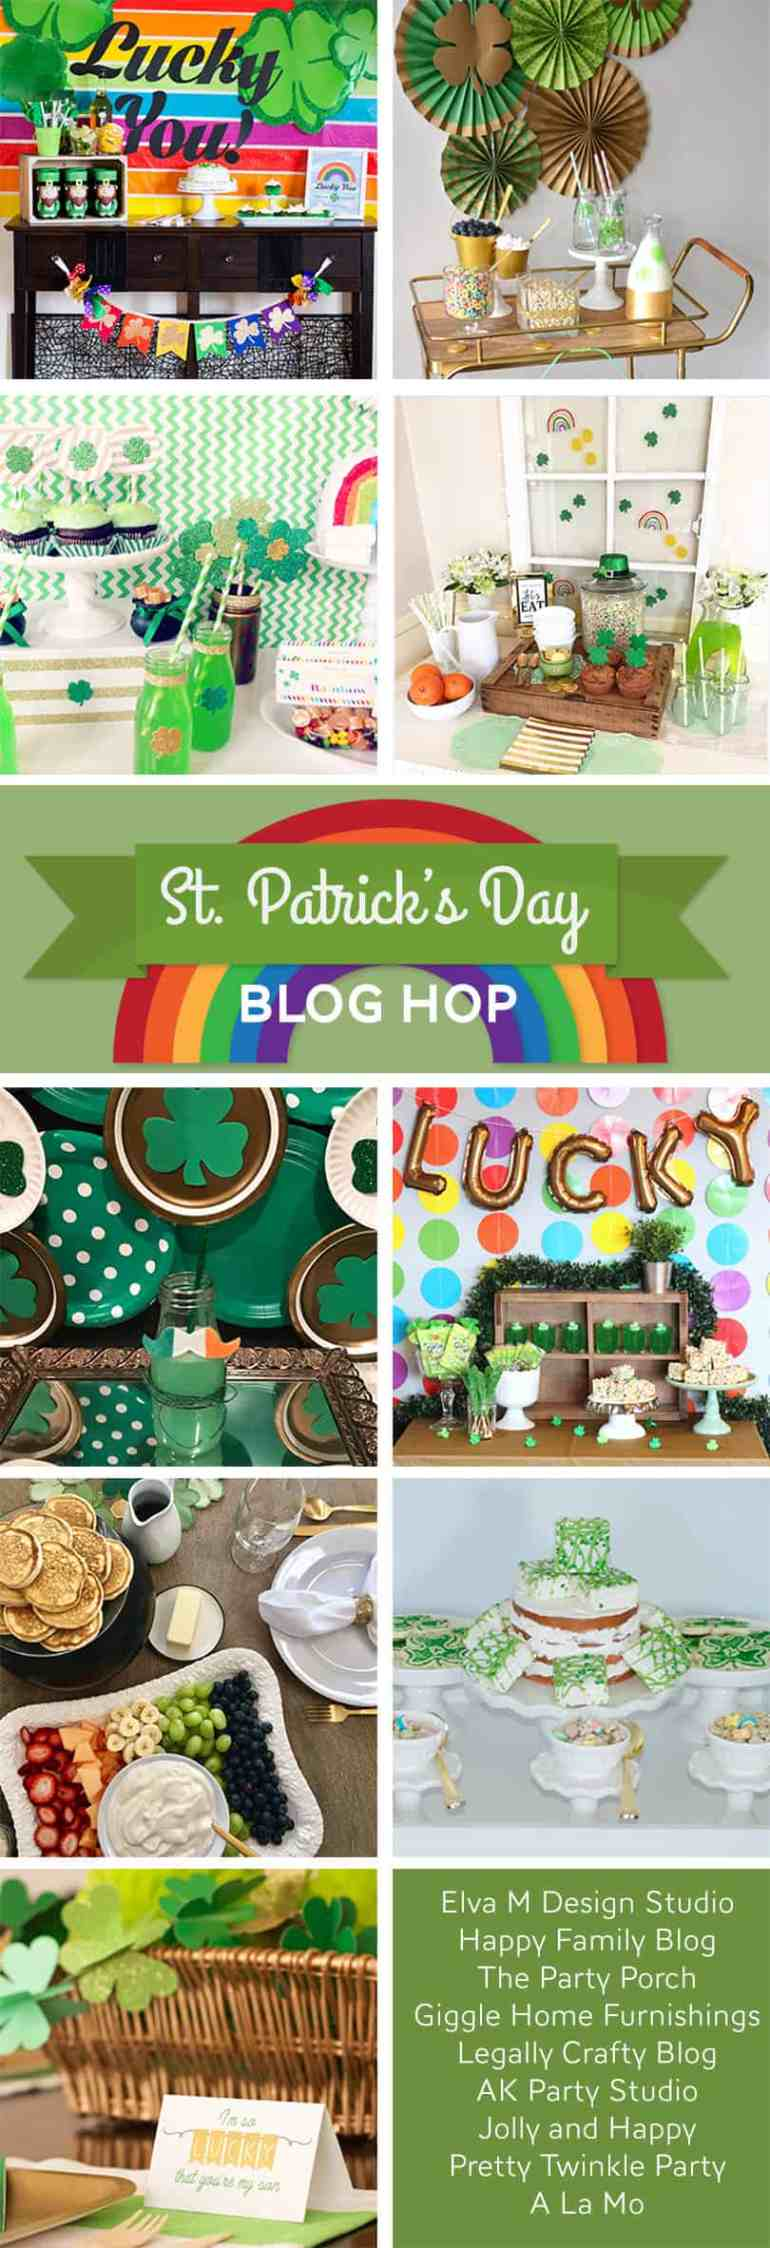 St. Patrick's Day Blog Hop Bloggers